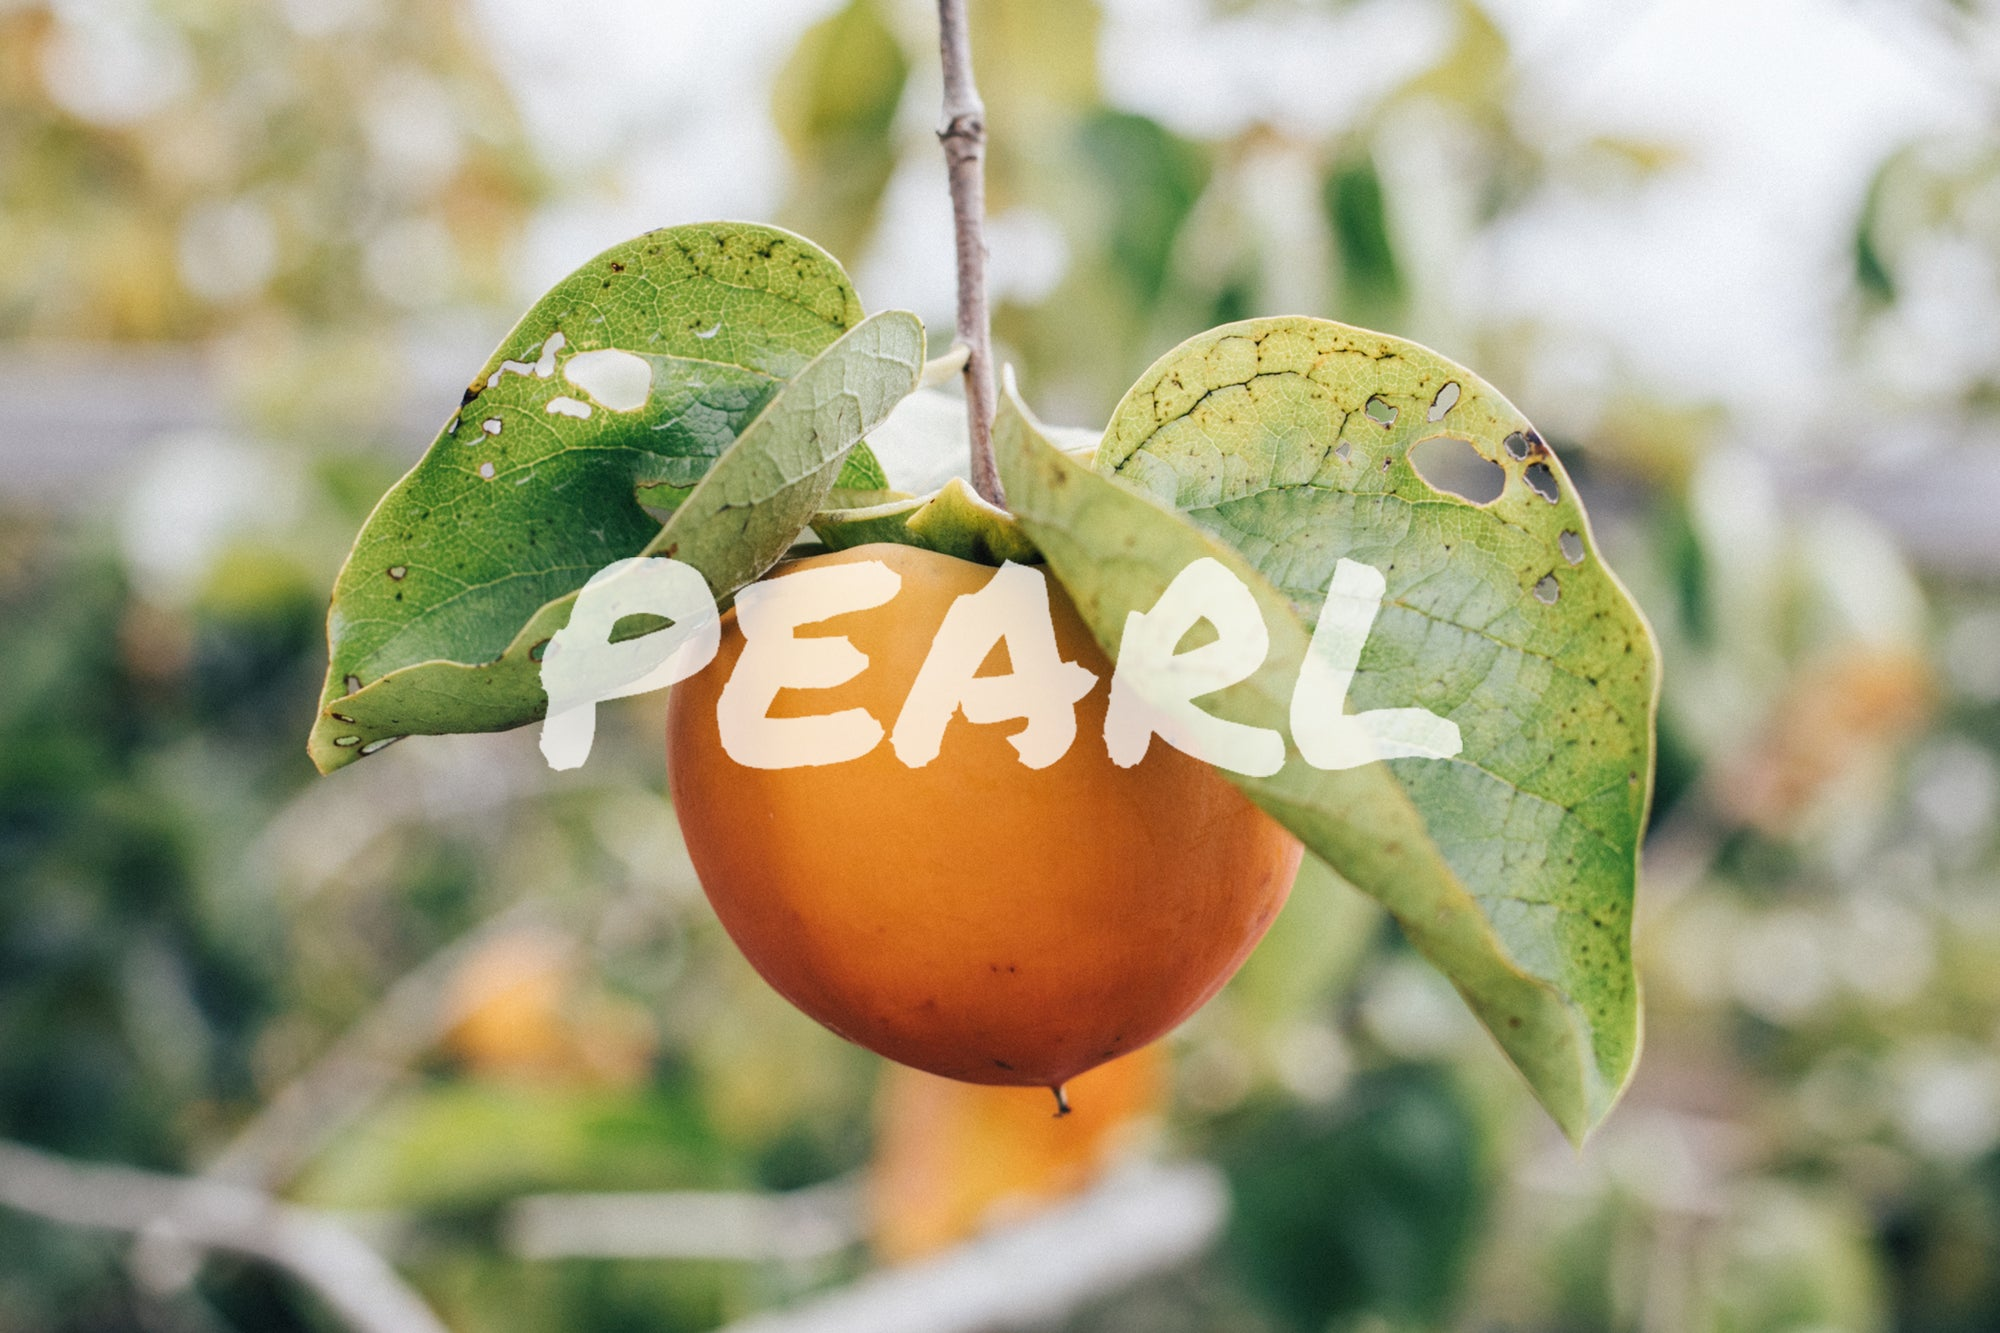 PEARL NOW AVAILABLE IN THE BOOCH BOX